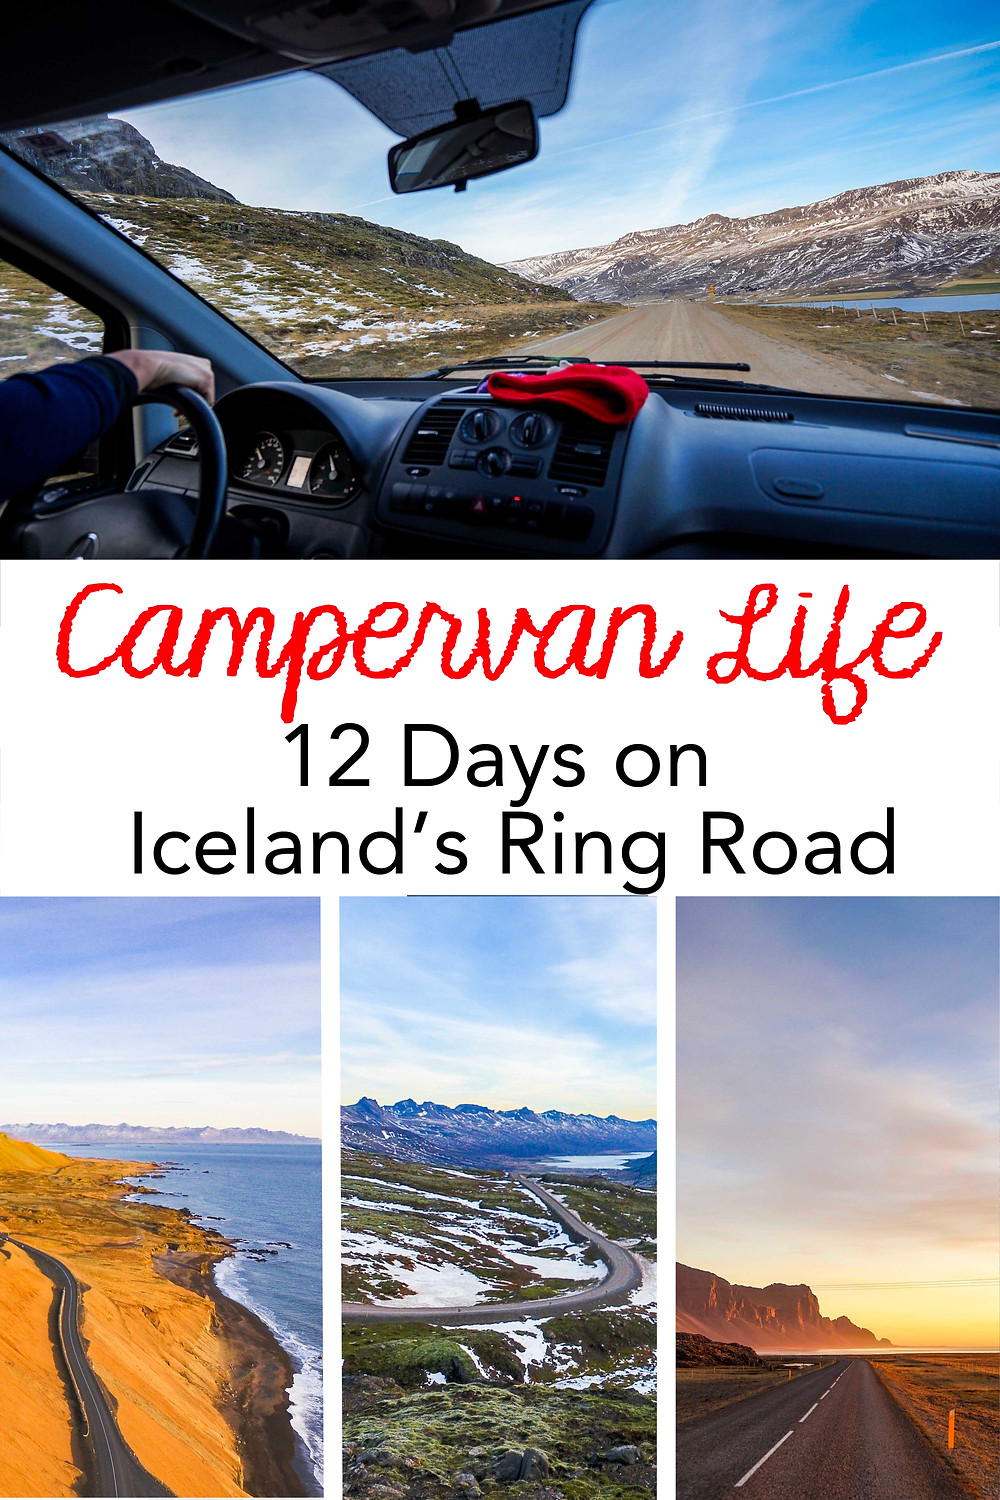 Campervan Life: 12 Days on Iceland's Ring Road